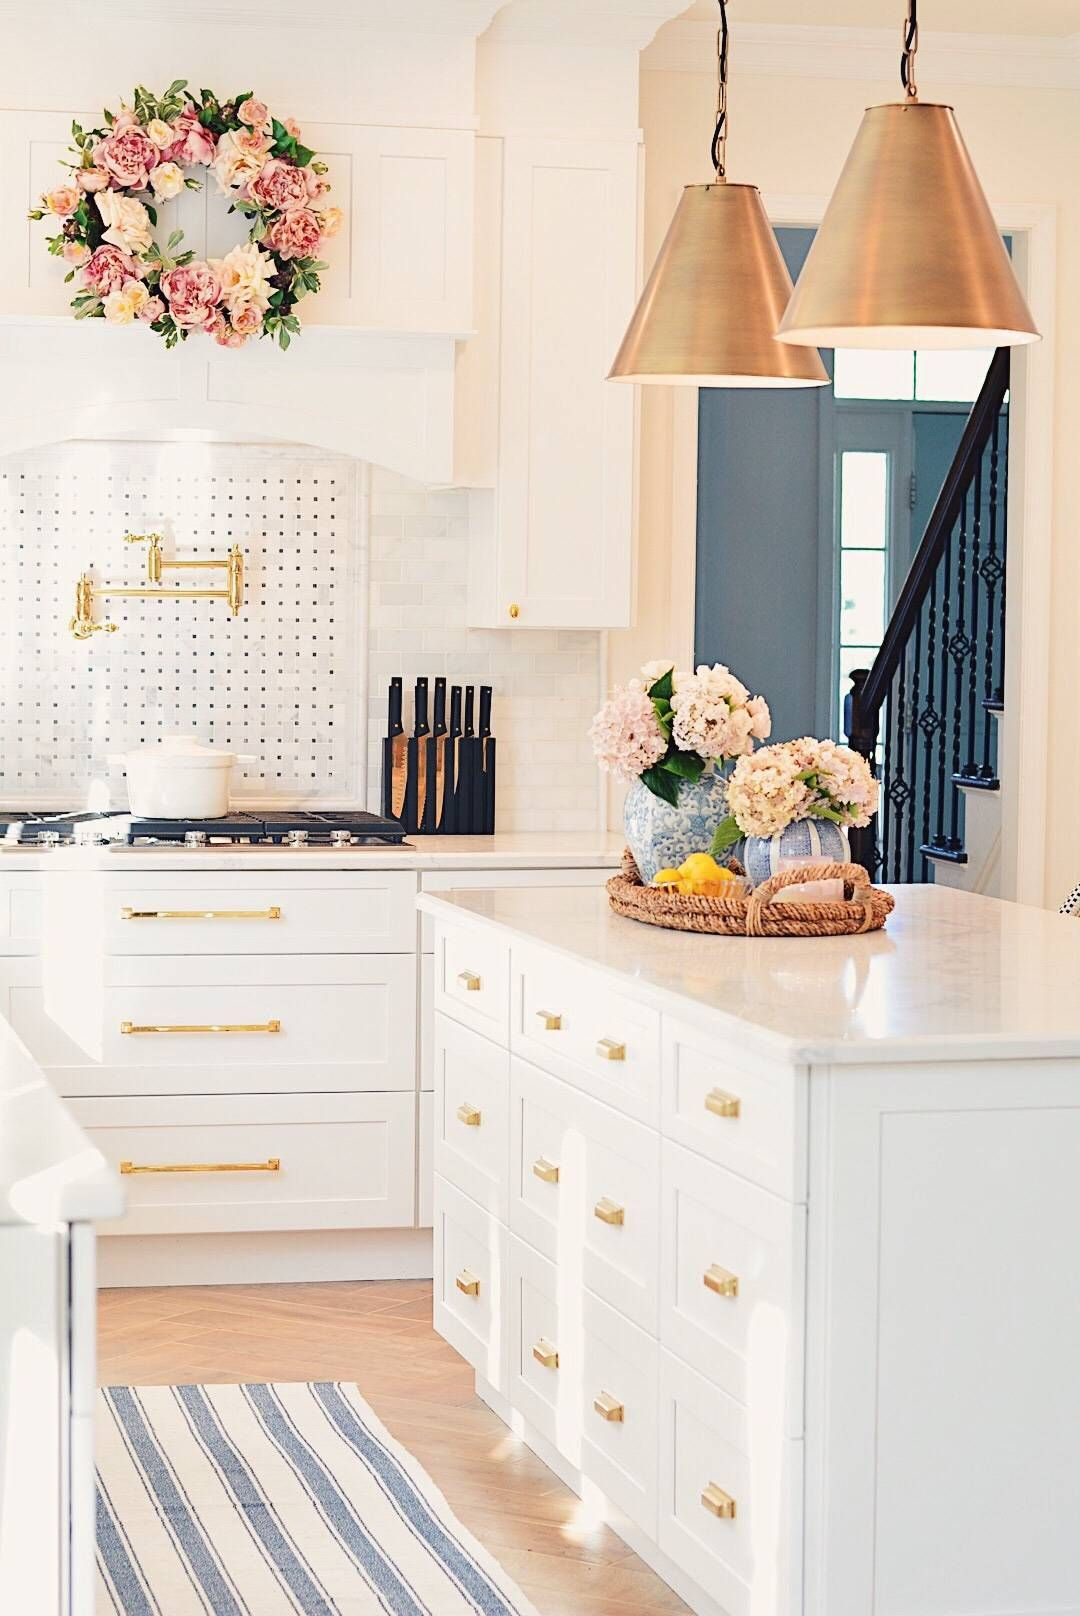 Kitchen Remodel Tips How to Create a Beautiful and Functional ...